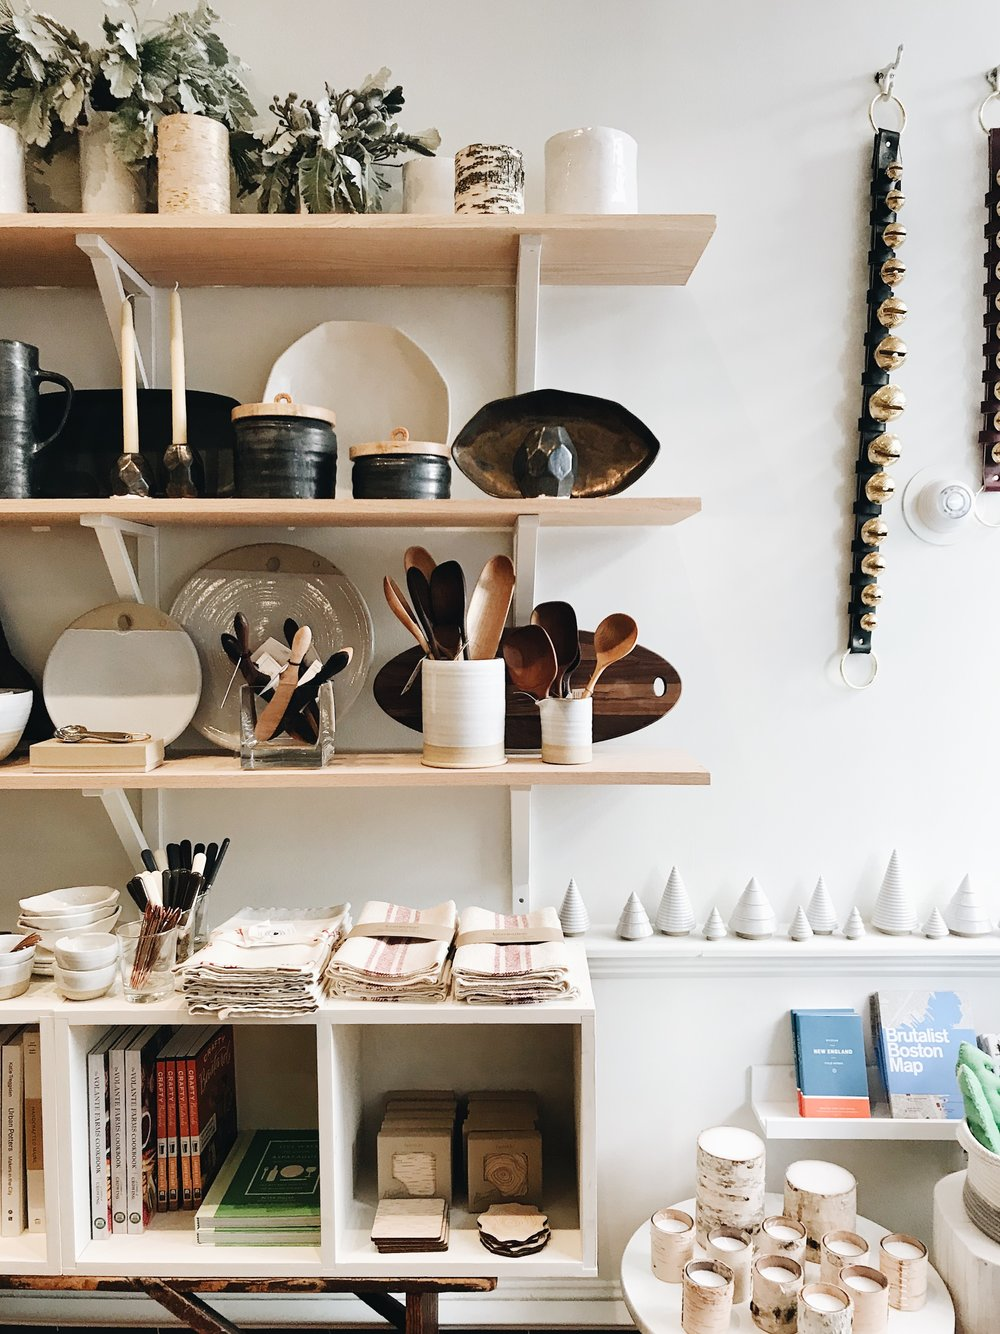 5 Ways To Shop More Sustainably This Holiday Season